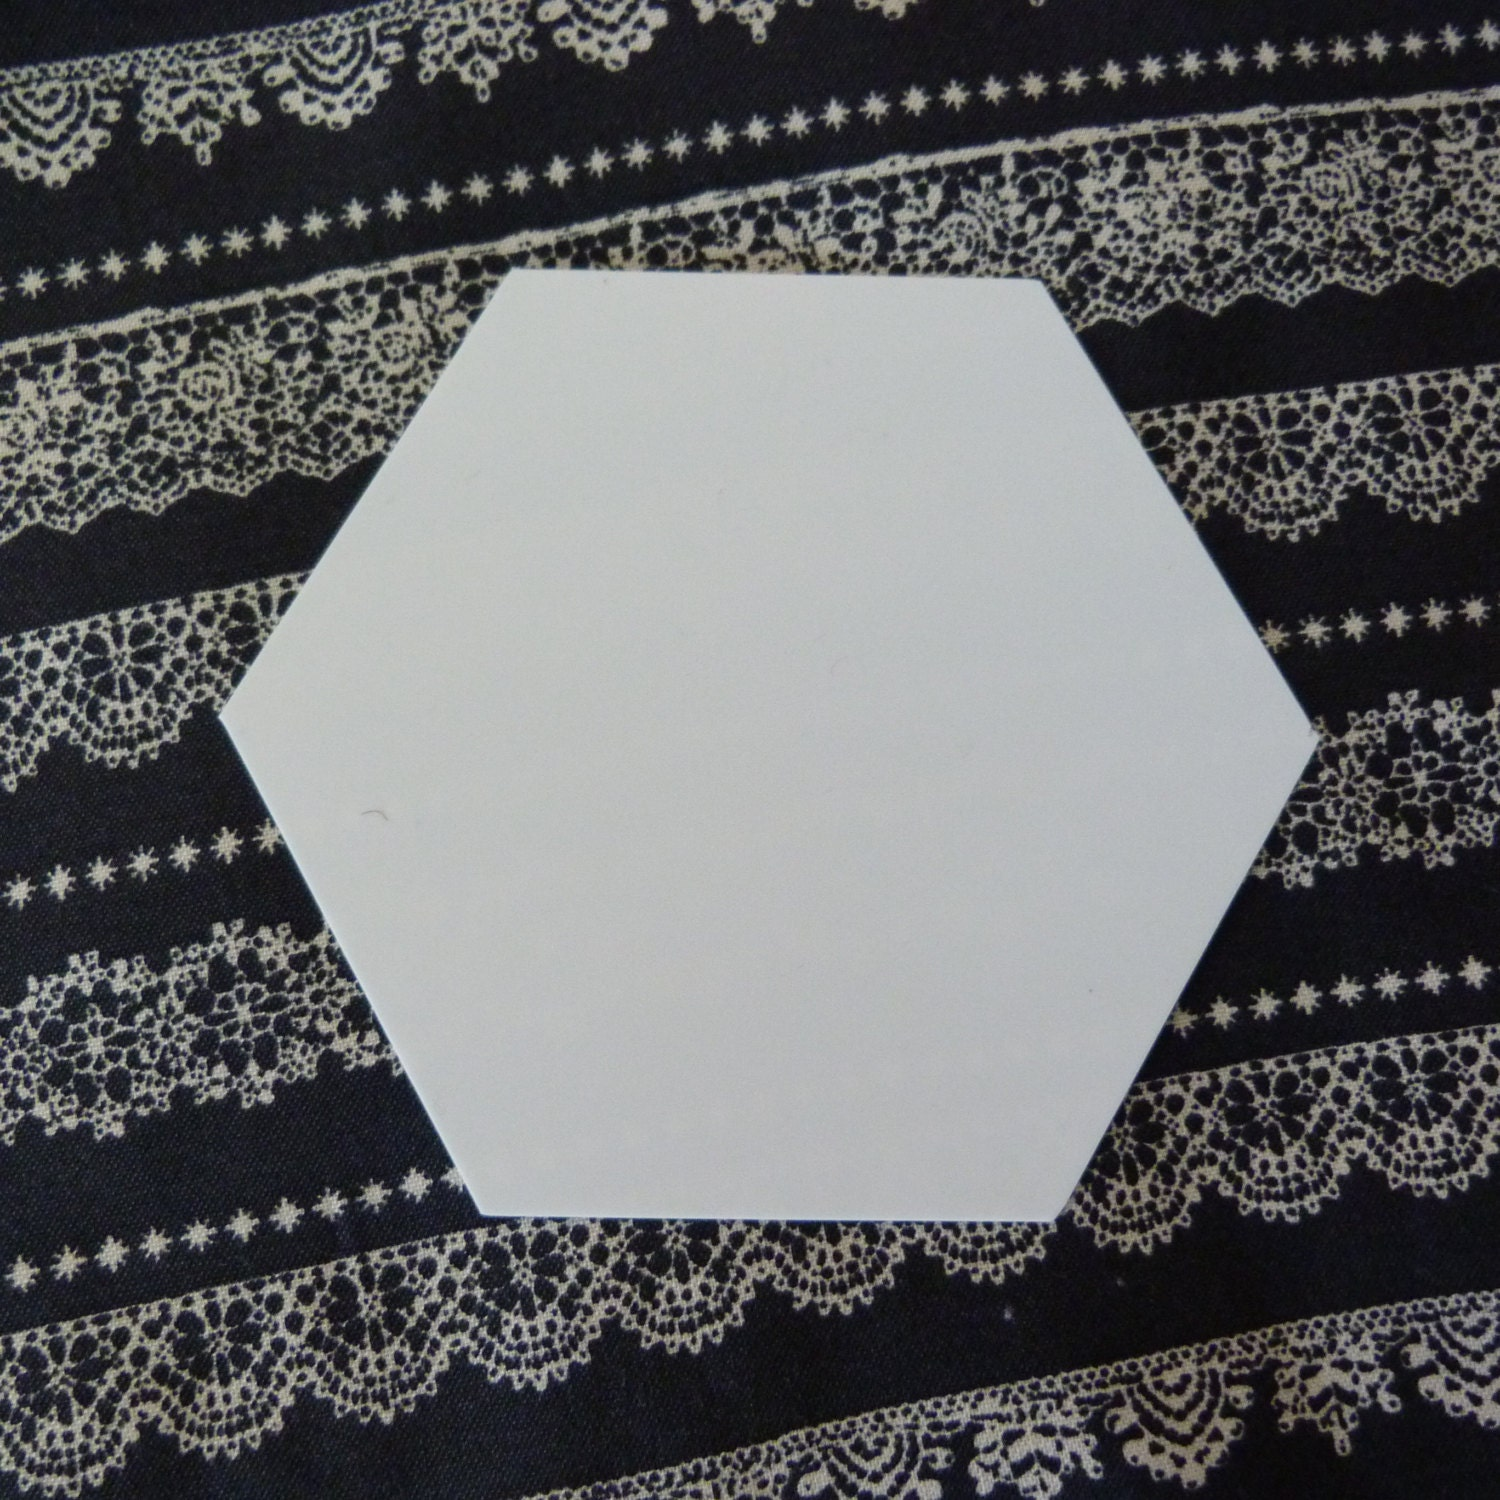 plastic hexagon quilt template for english paper piecing and With hexagon quilt template plastic